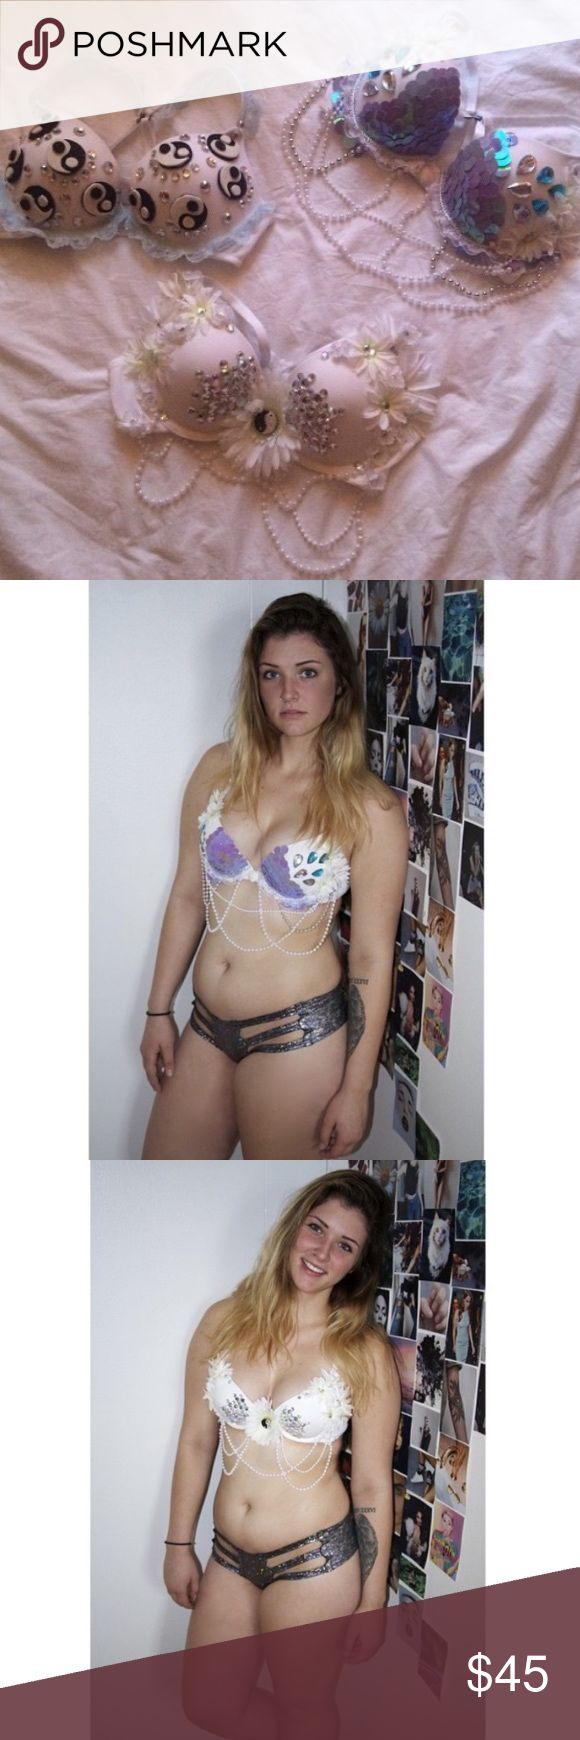 Yin Yang Daisy + Mermaid Scales Rave Bra Duo (Top left bra not included) Embellished bras perfect for any event, festival, party, or costume! Push up with racerback convertible straps. Both size 34B/32C Intimates & Sleepwear Bras